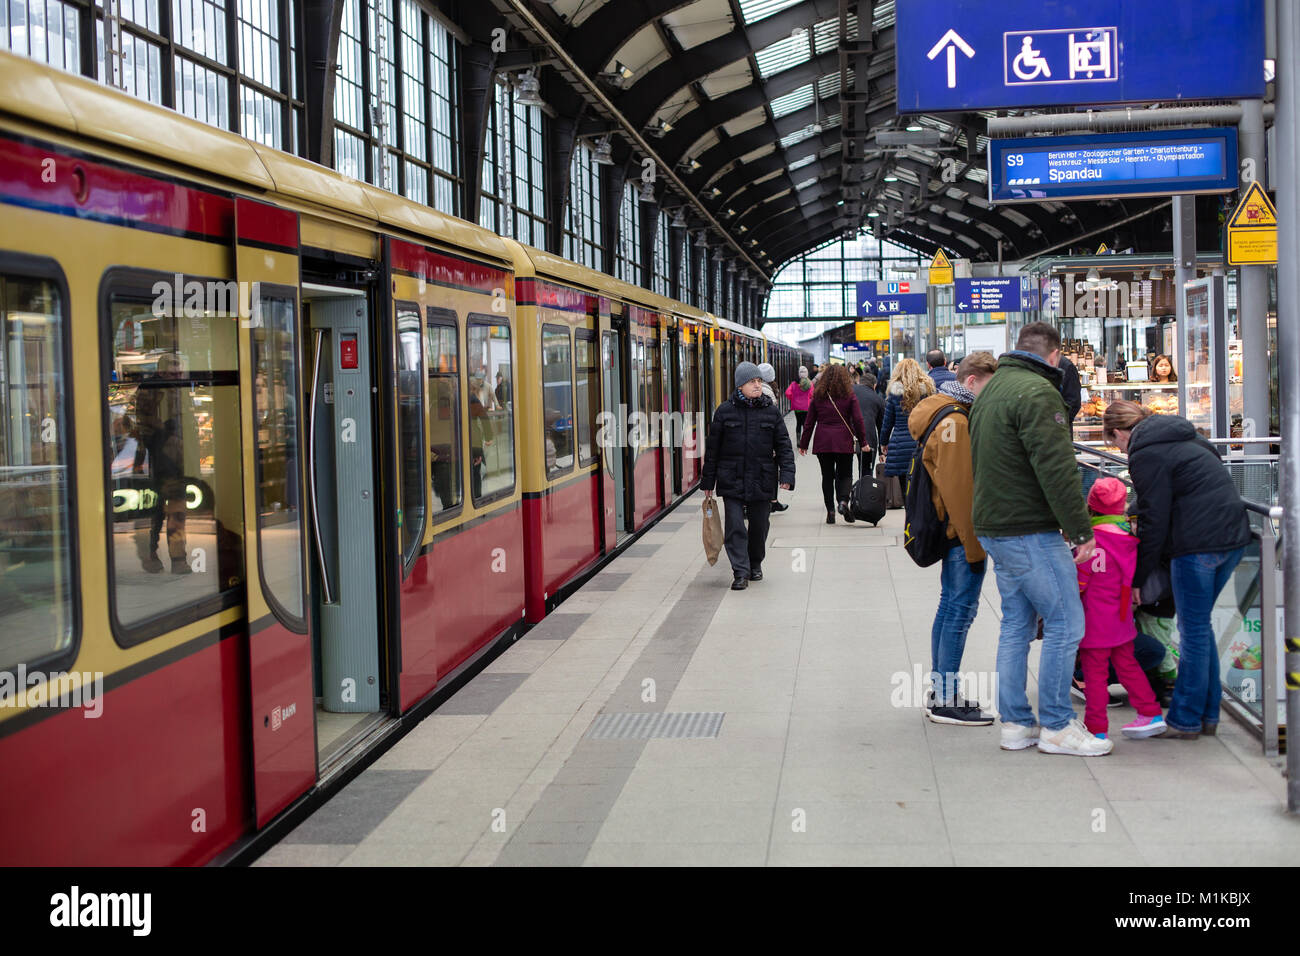 Passengers getting off the train to the platform at the Friedrichstrasse Train station in Berlin Germany - Stock Image